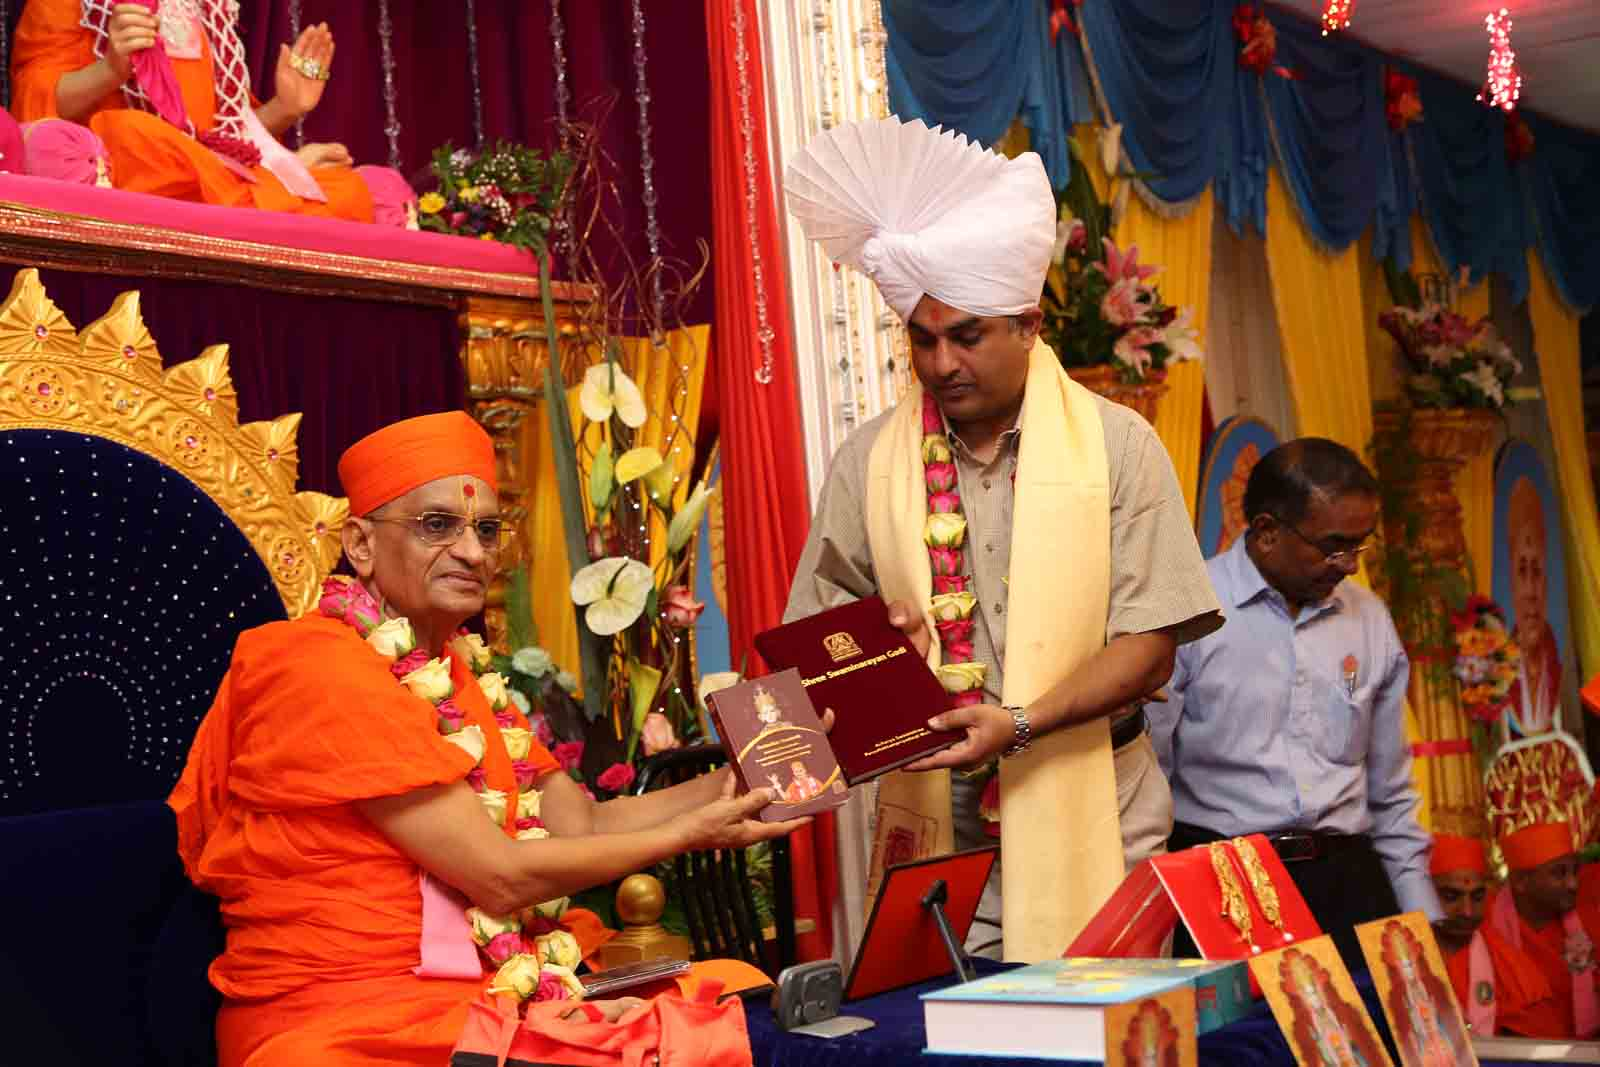 The guest receives 'Shree Swaminarayan Gadi' and 'Sadachar Sandesh'from Acharya Swamishree